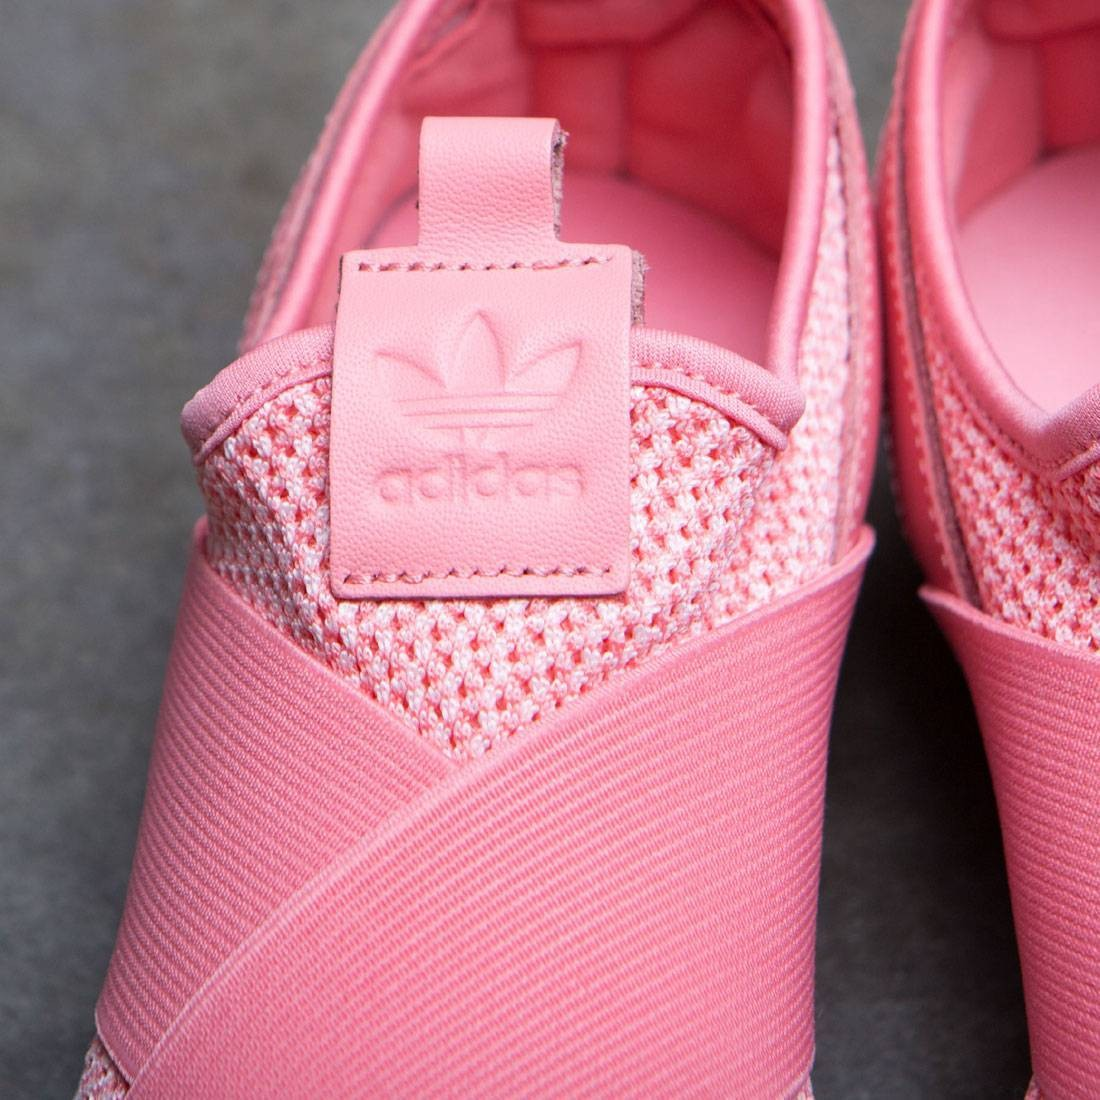 Chaussures Adidas Superstar W Rose Glisse Sur Femmes Tactile xCwpv